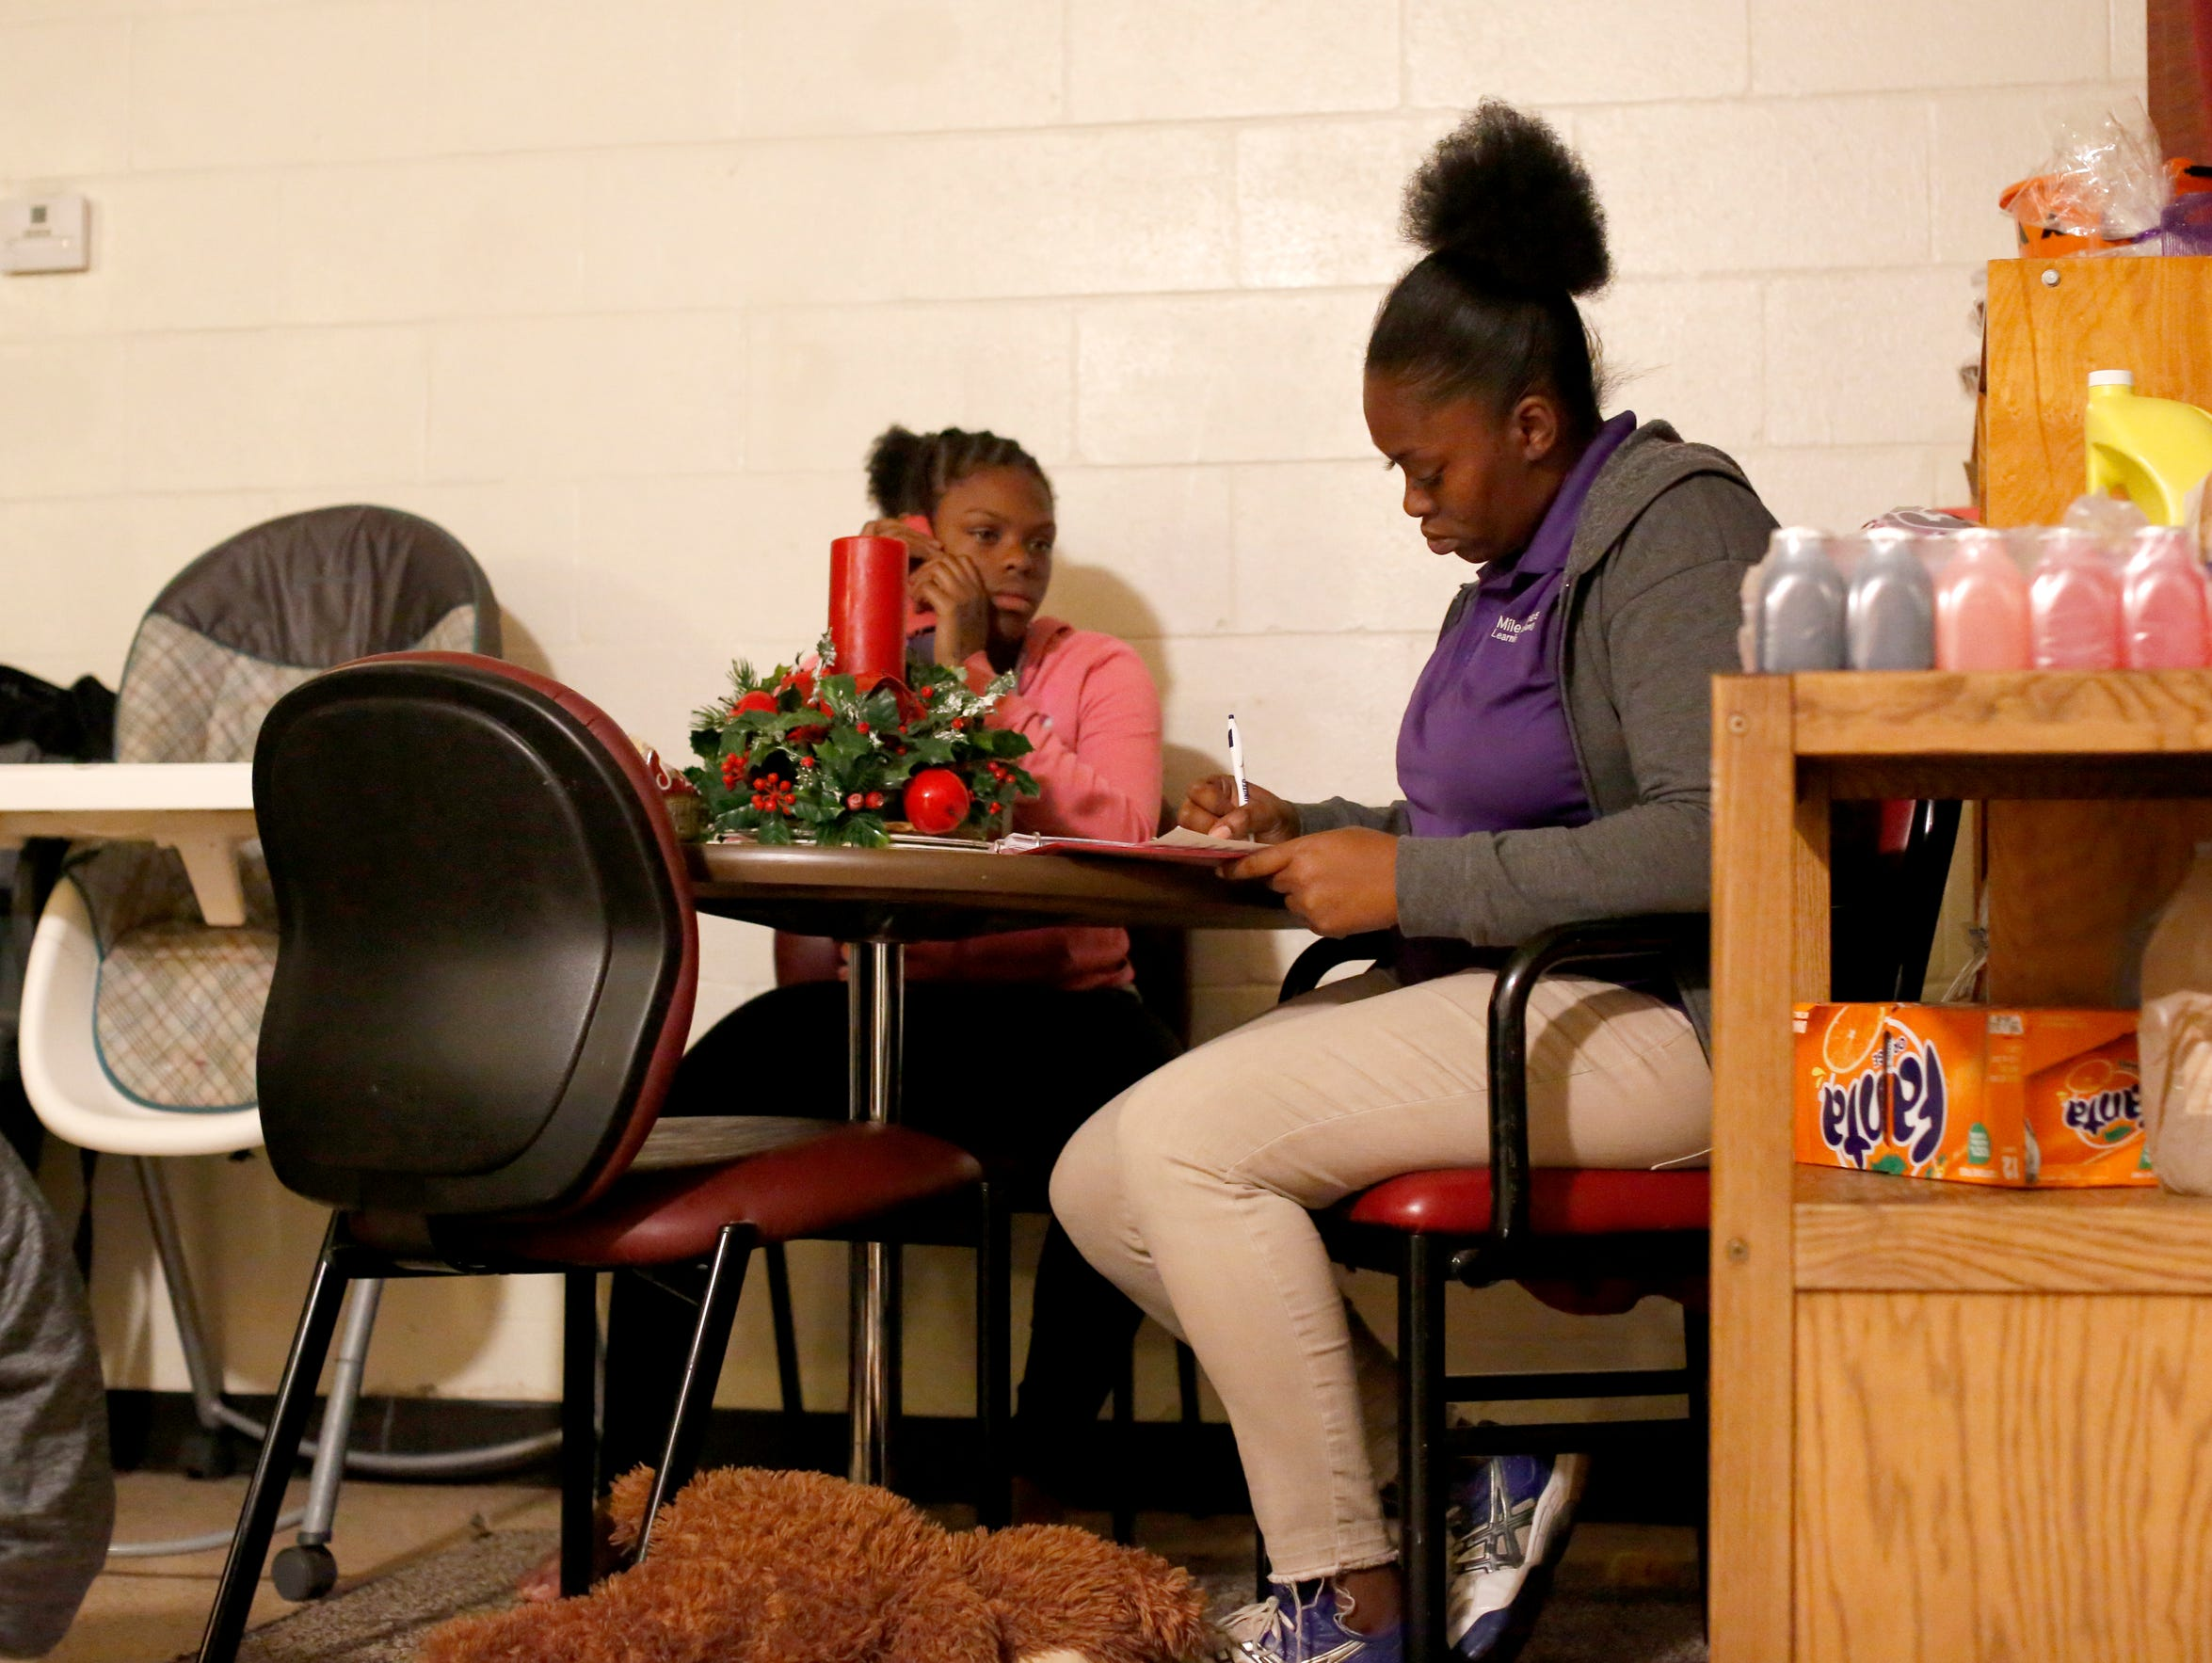 Porsche Robinson (right) goes over school papers with